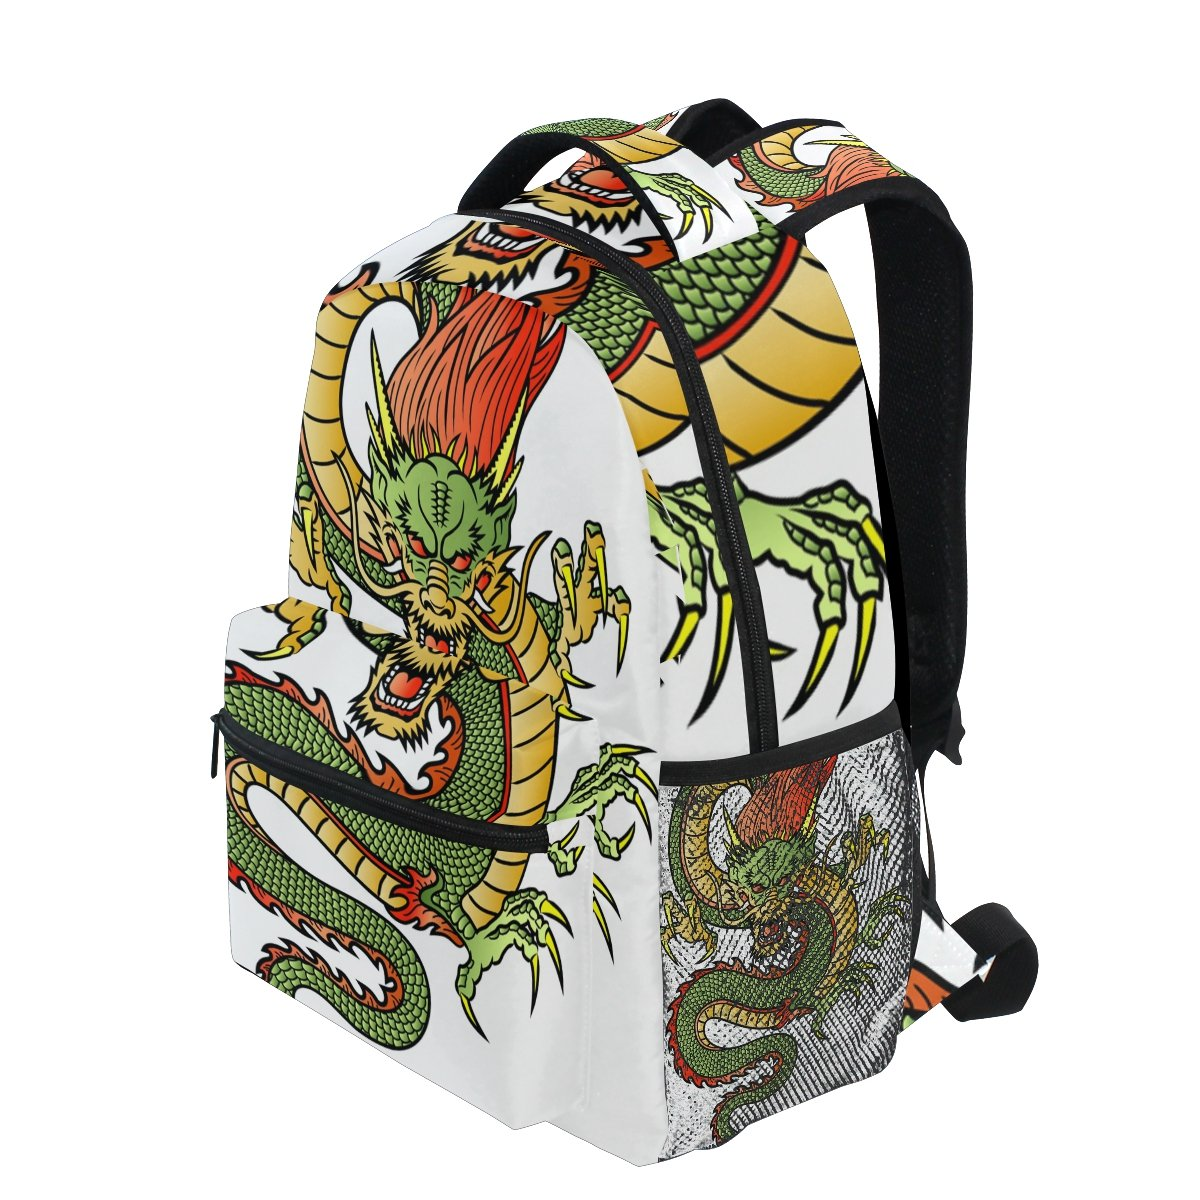 Amazon.com: lorvies dragón chino mochila Casual bolso de ...